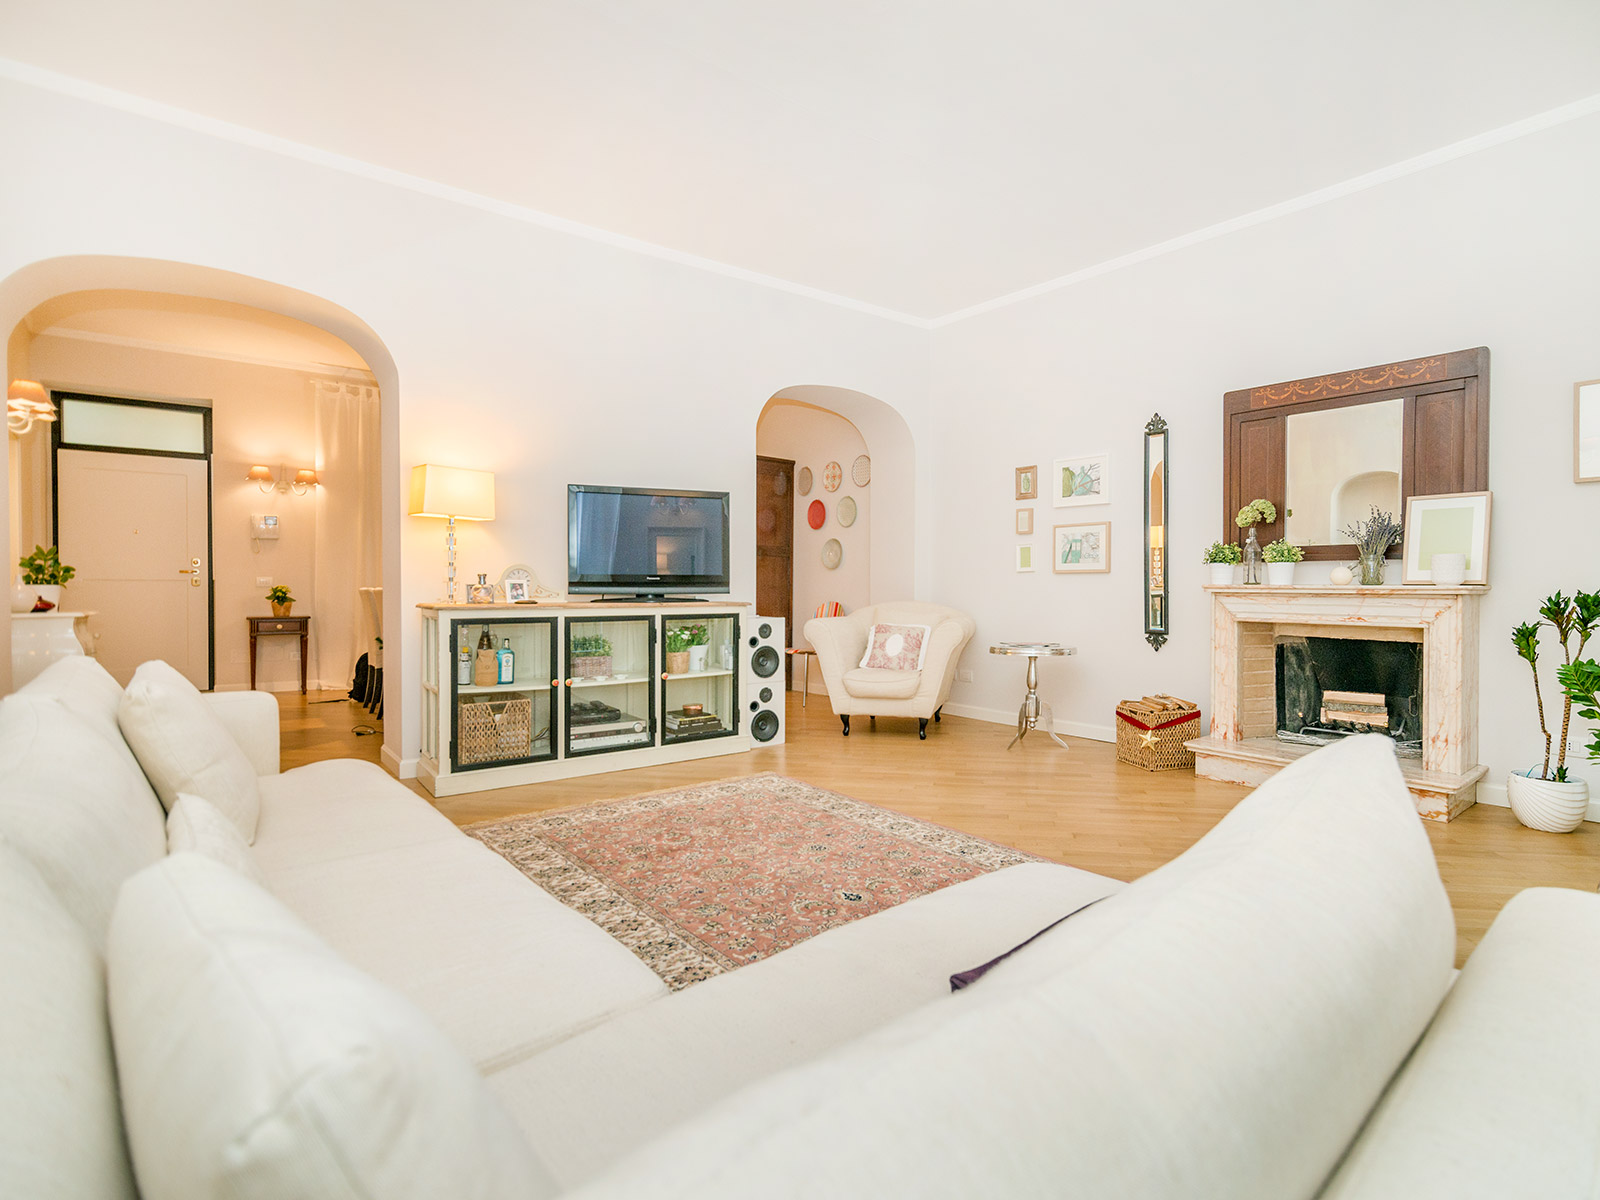 Additional photo for property listing at Finely refurbished apartment near Duomo Via Cerva Milano, Milan 20121 Italia